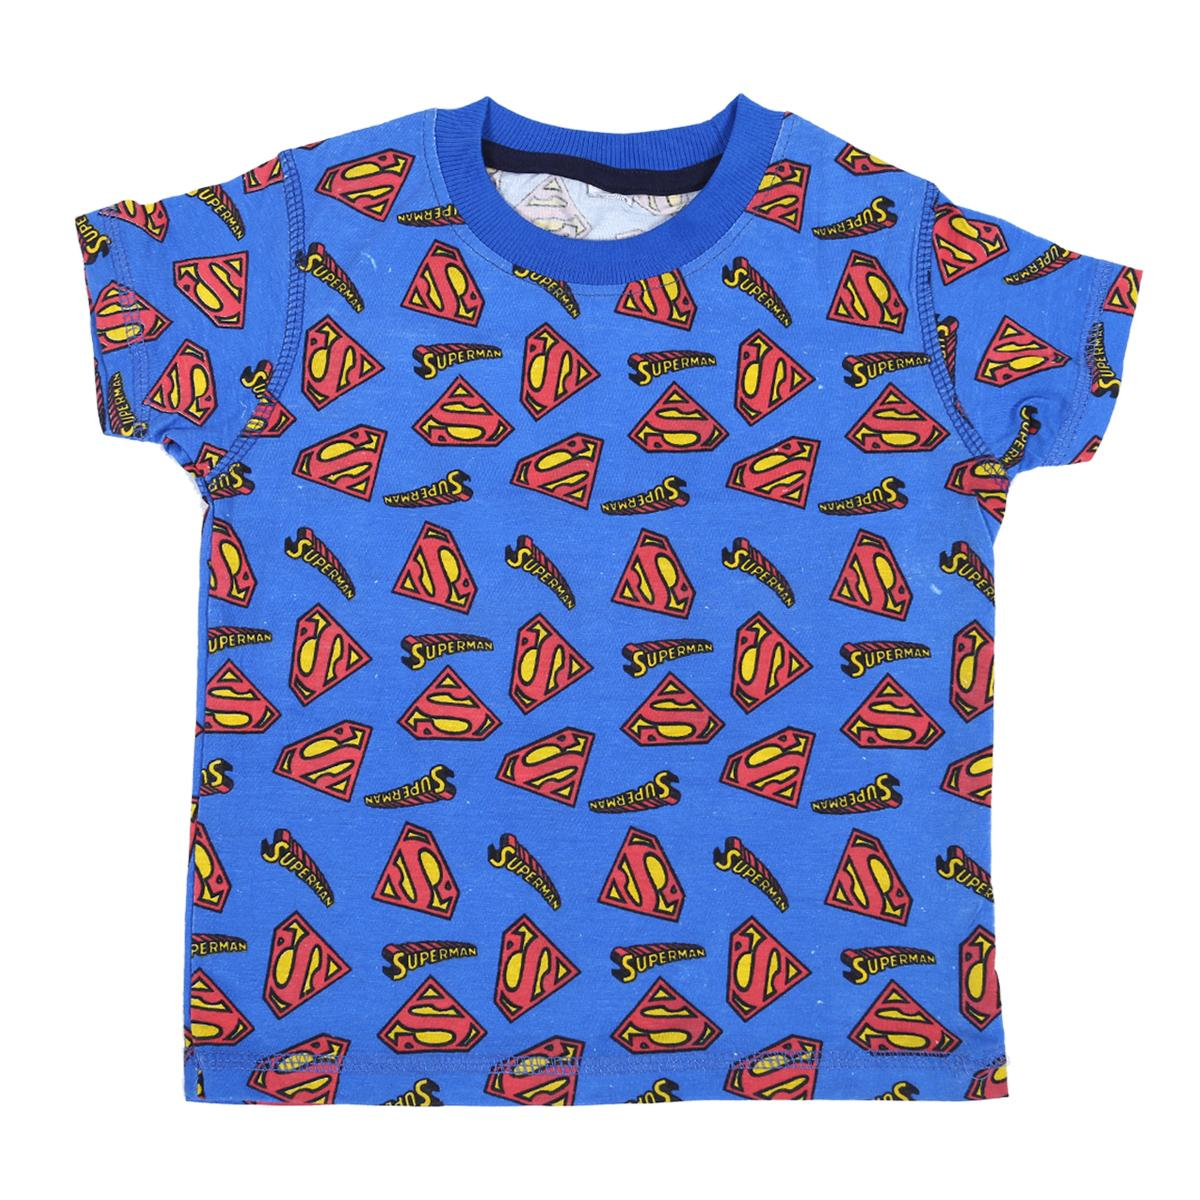 8cbc94c82 Wwe T Shirts For Toddlers - DREAMWORKS